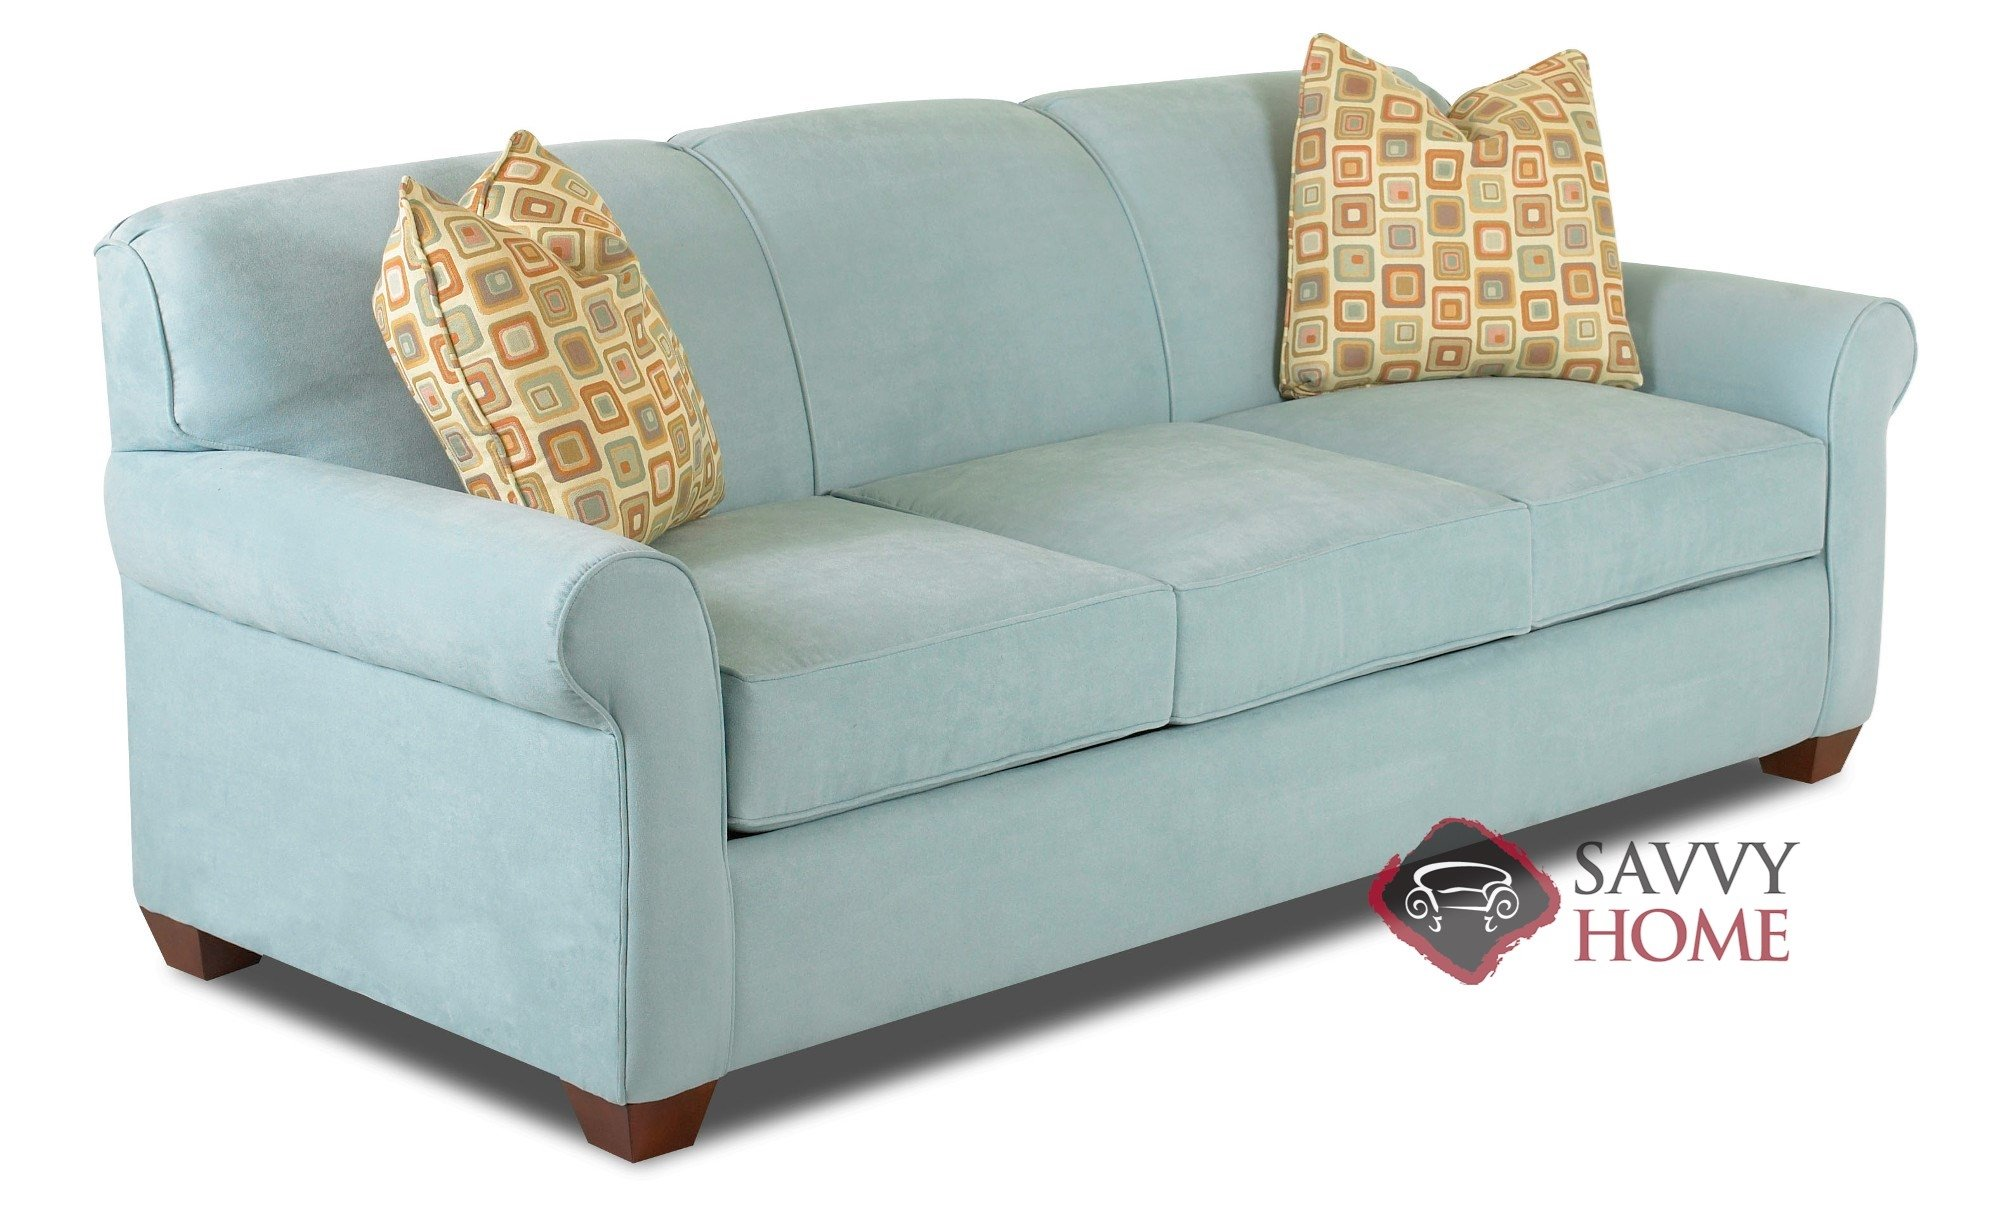 Swell Calgary Queen Sofa Bed By Savvy Beatyapartments Chair Design Images Beatyapartmentscom